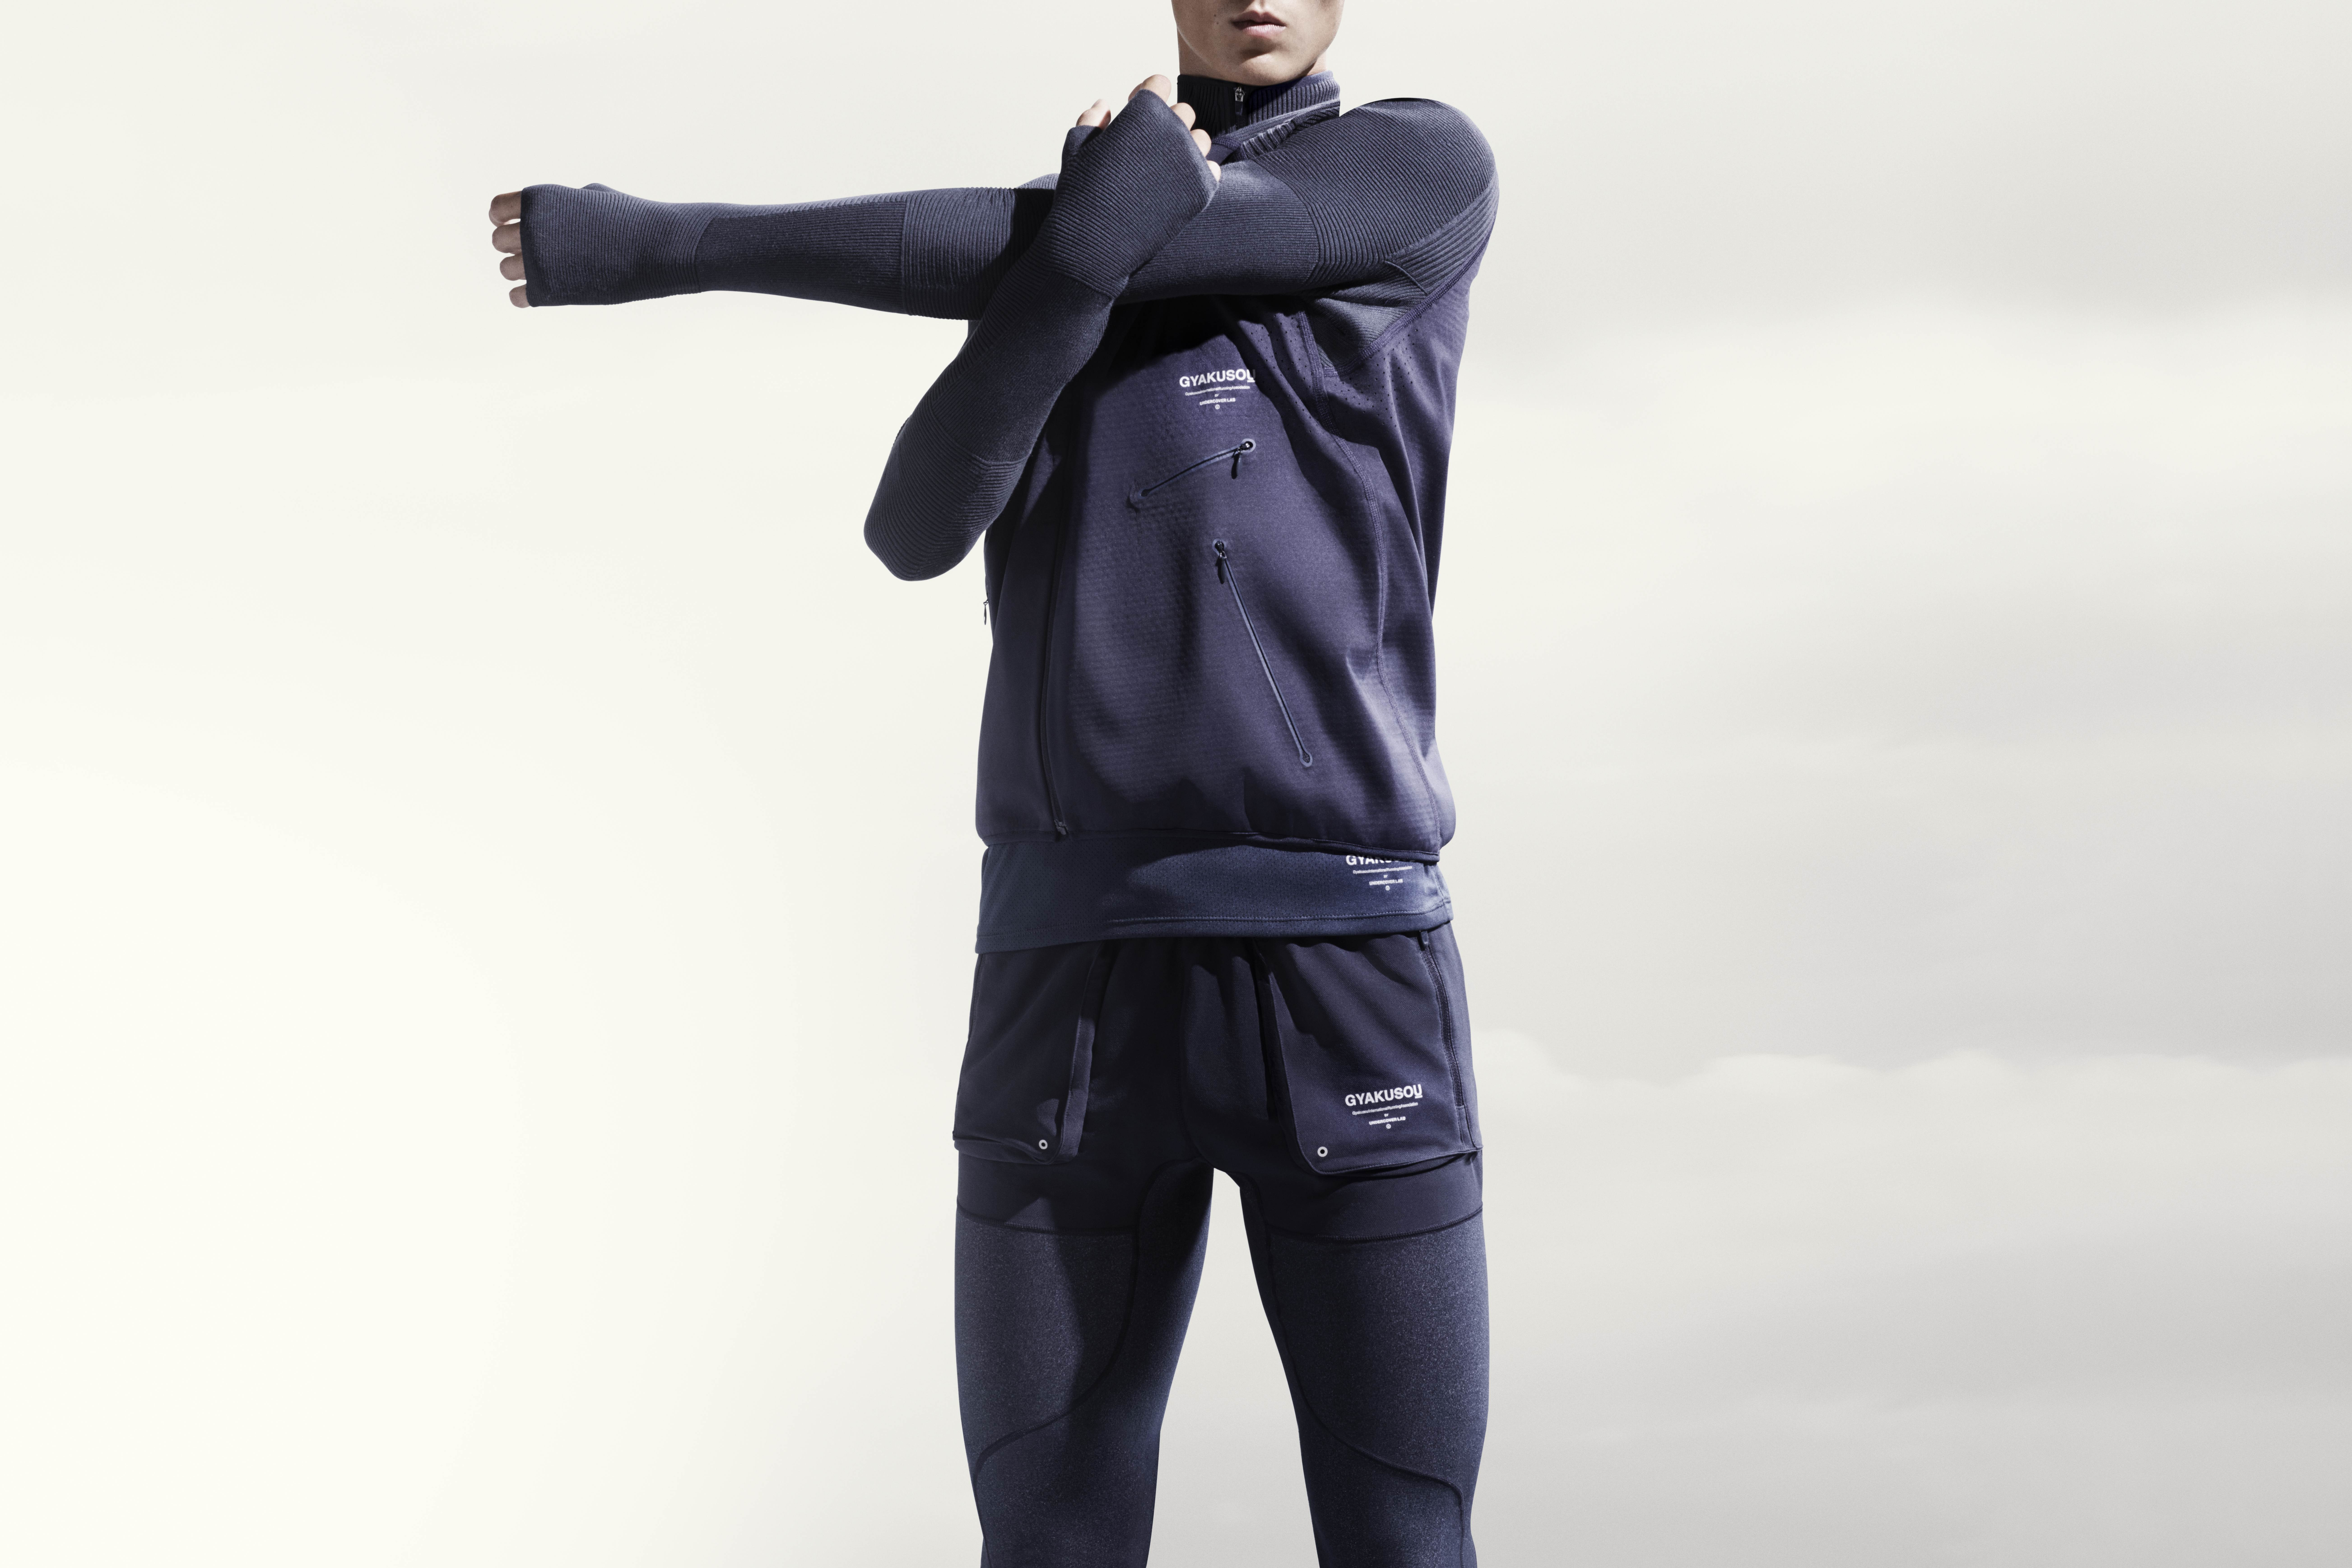 Nike X Undercover Gyakusou Holiday 2014 Collection This